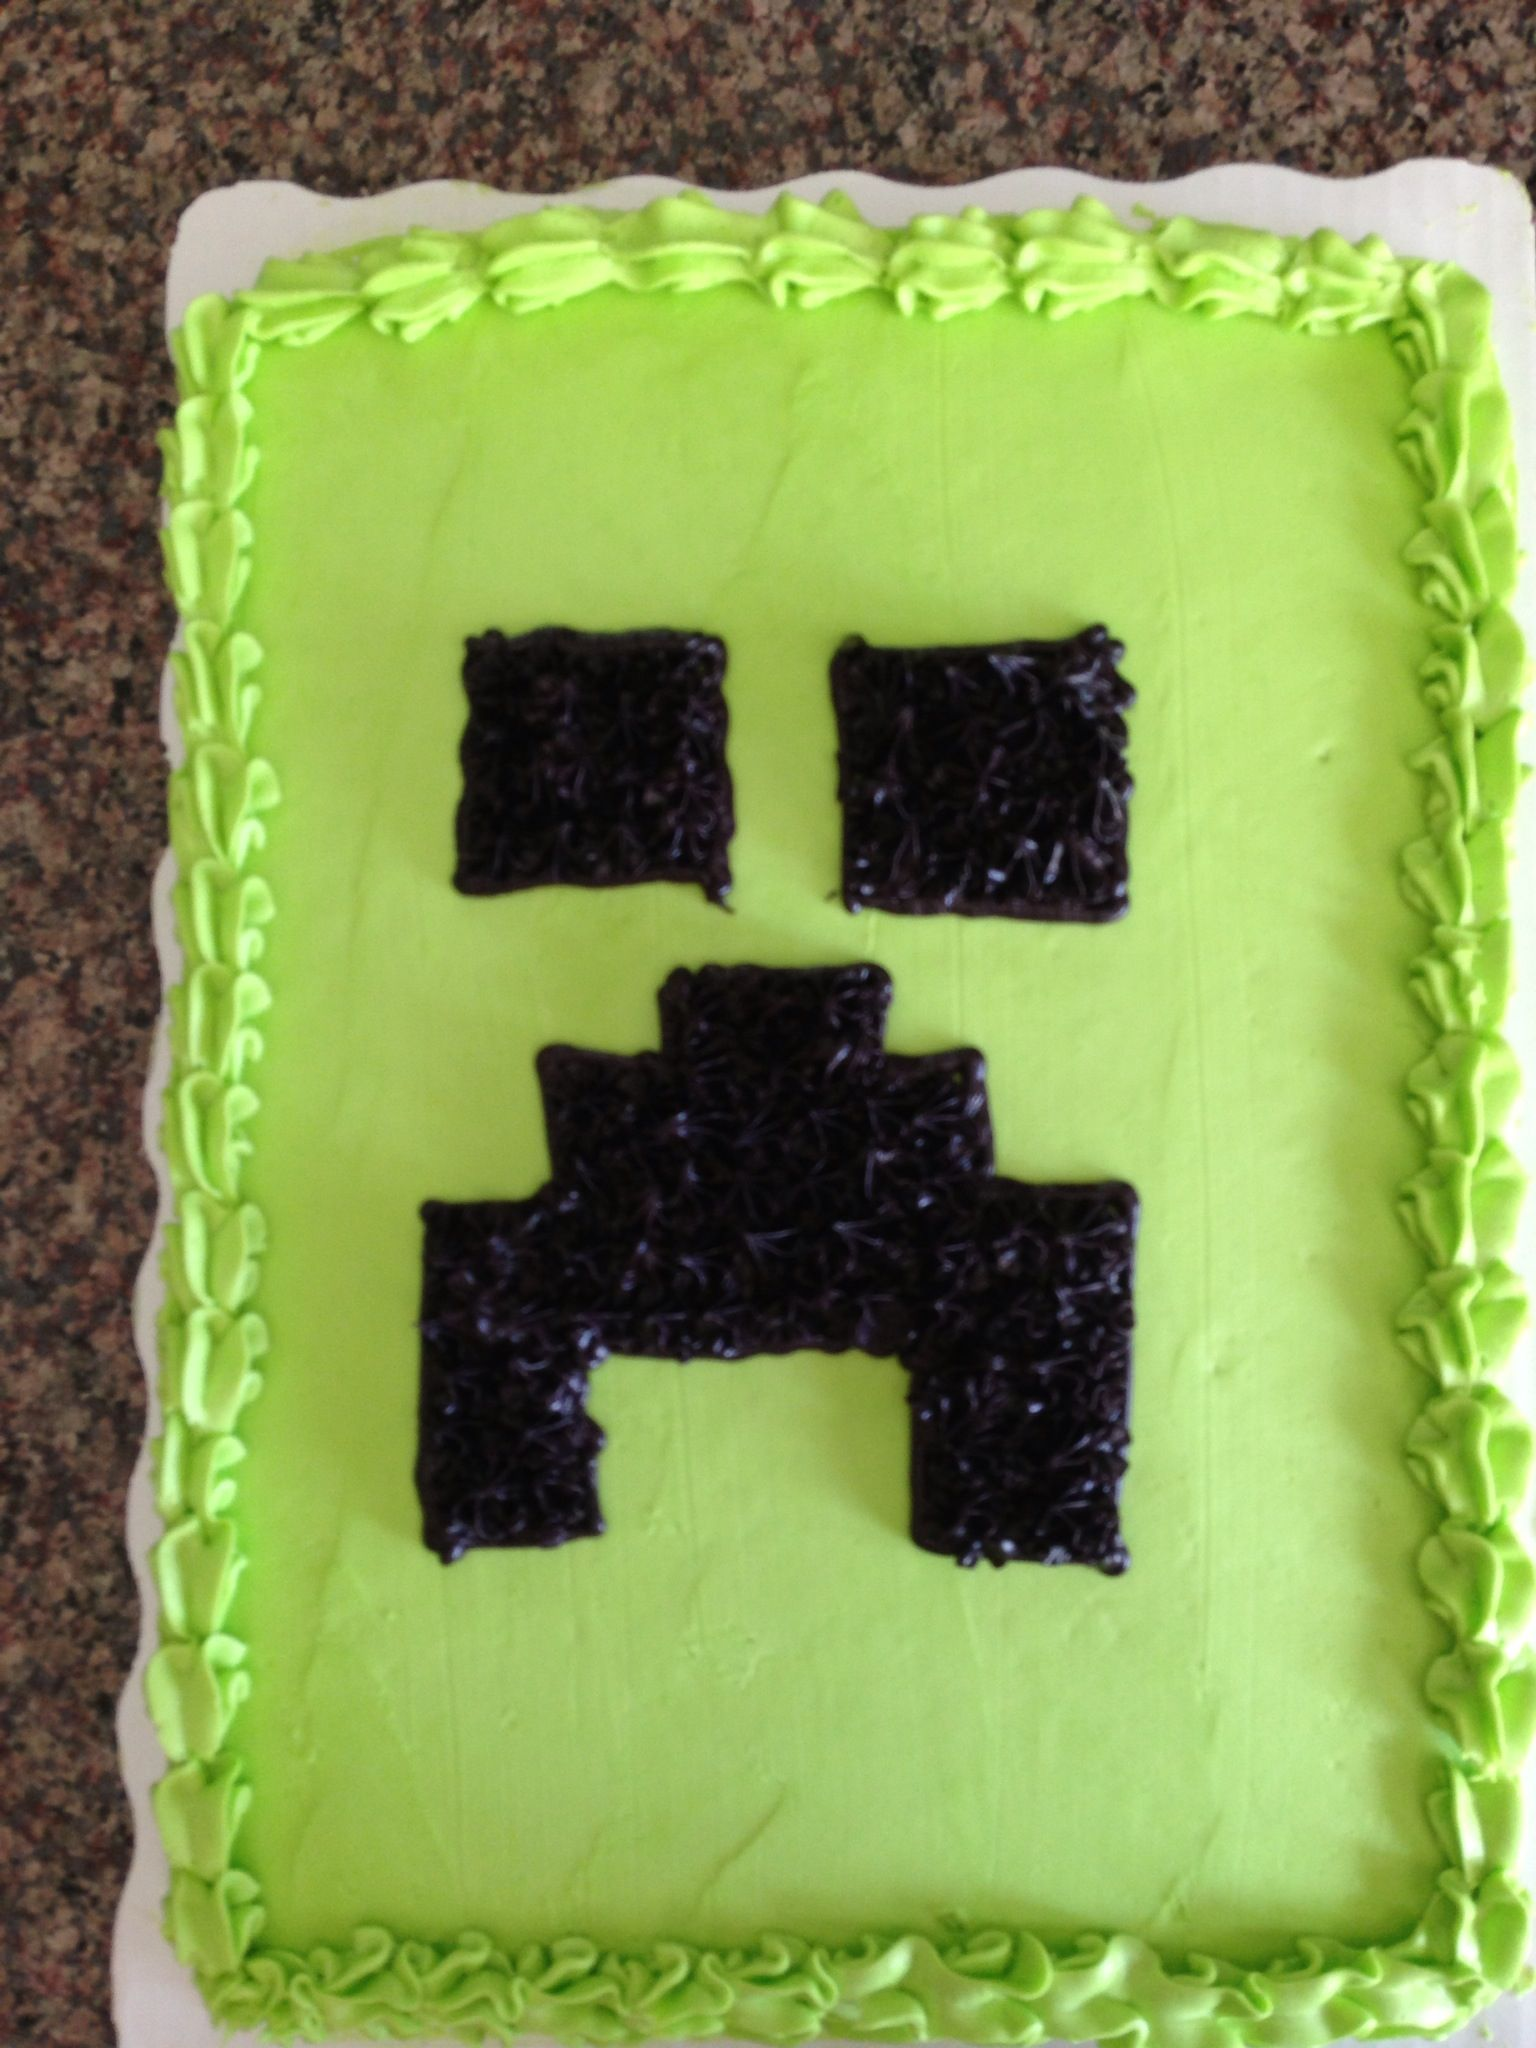 Ordered 1/2 sheet cake green & put the Creeper Face on myself. Not perfect but I've never decorated a cake before!